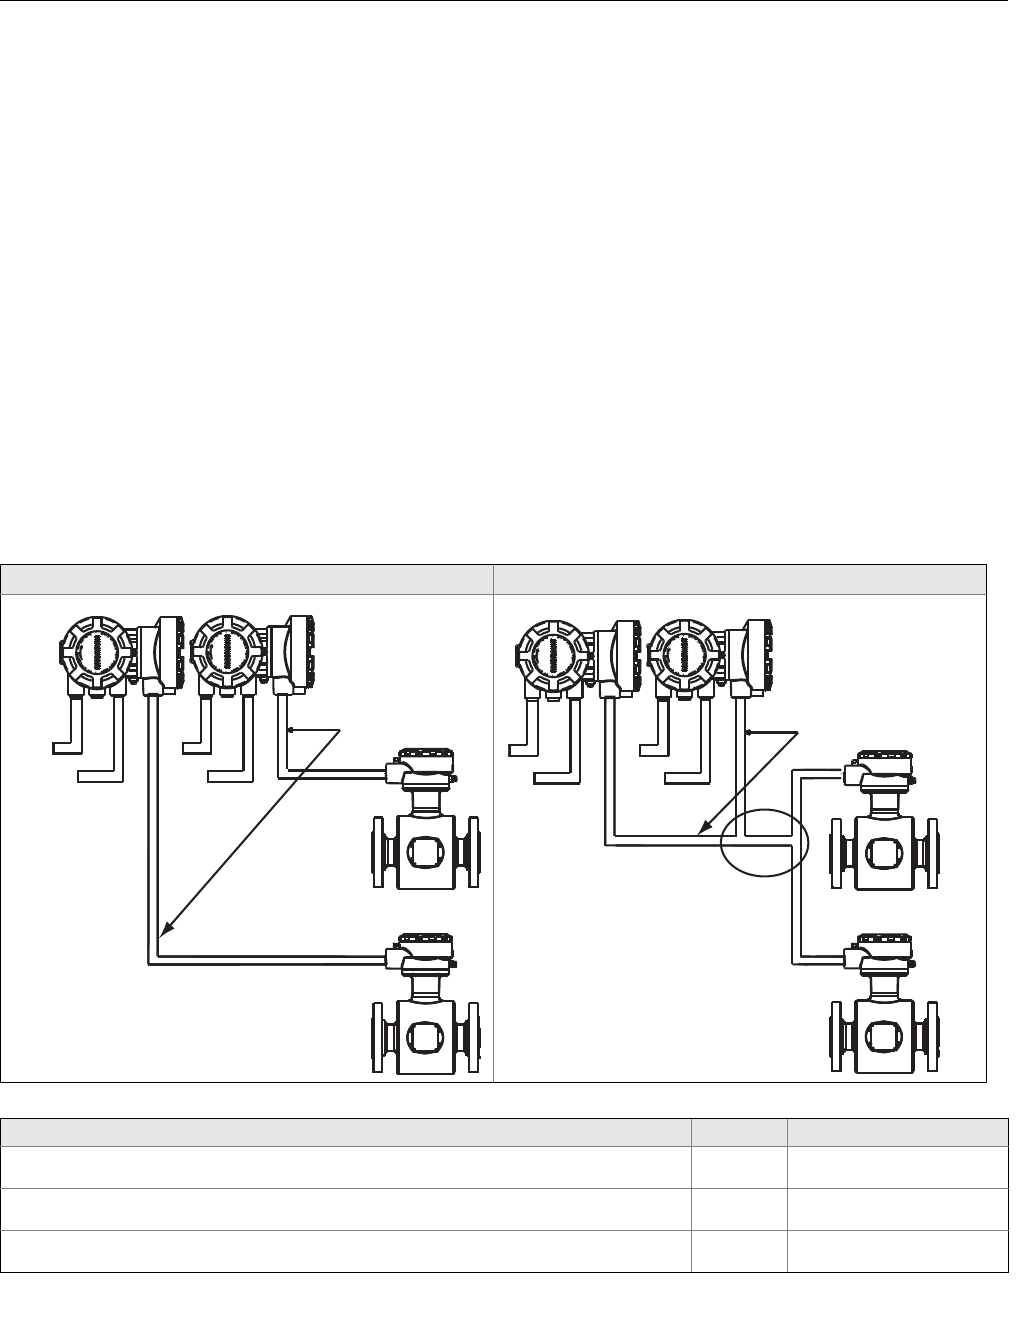 rosemount 8732 wiring diagram   29 wiring diagram images